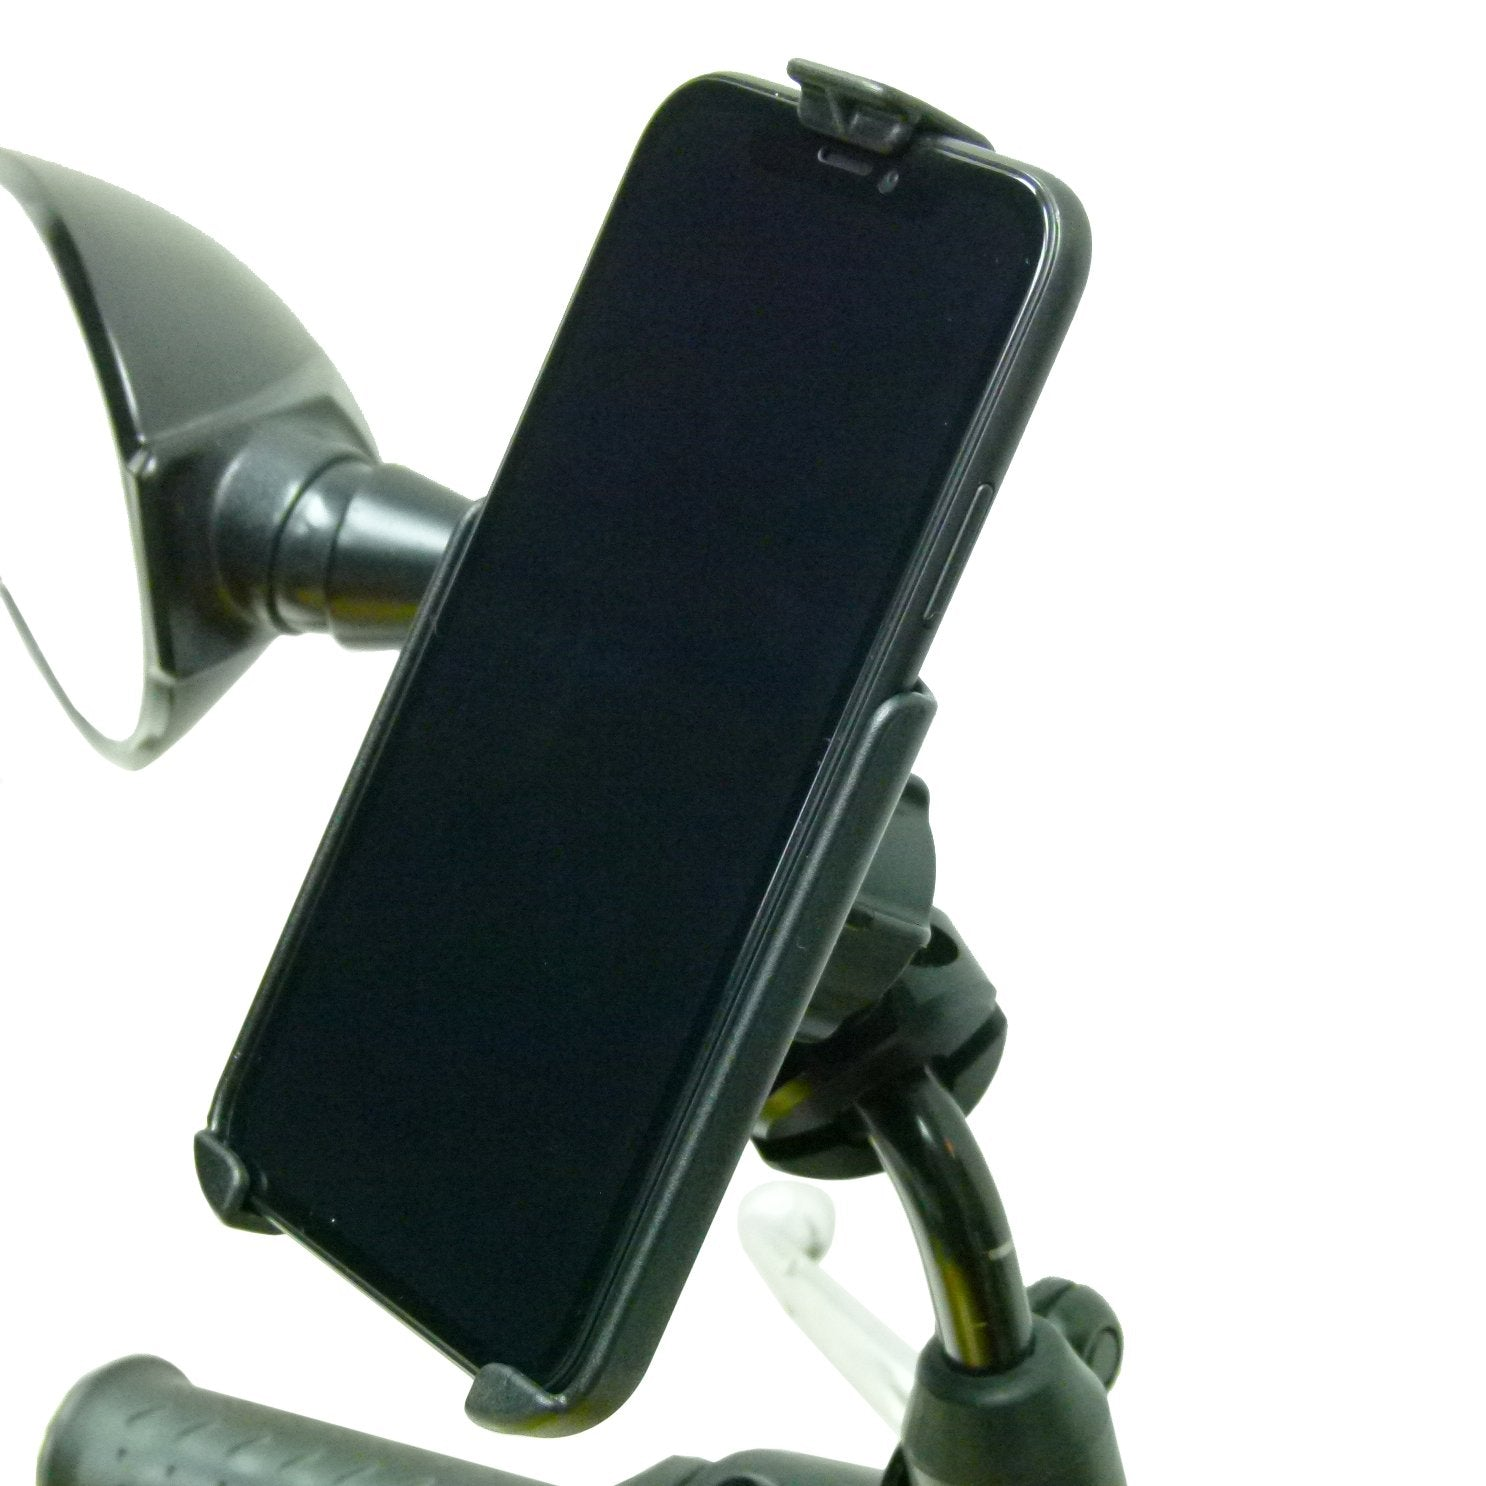 Motorcycle - Scooter Mirror Mount with Dedicated RAM Holder for iPhone 7 PLUS (sku 50367) - BuyBits Ltd UK